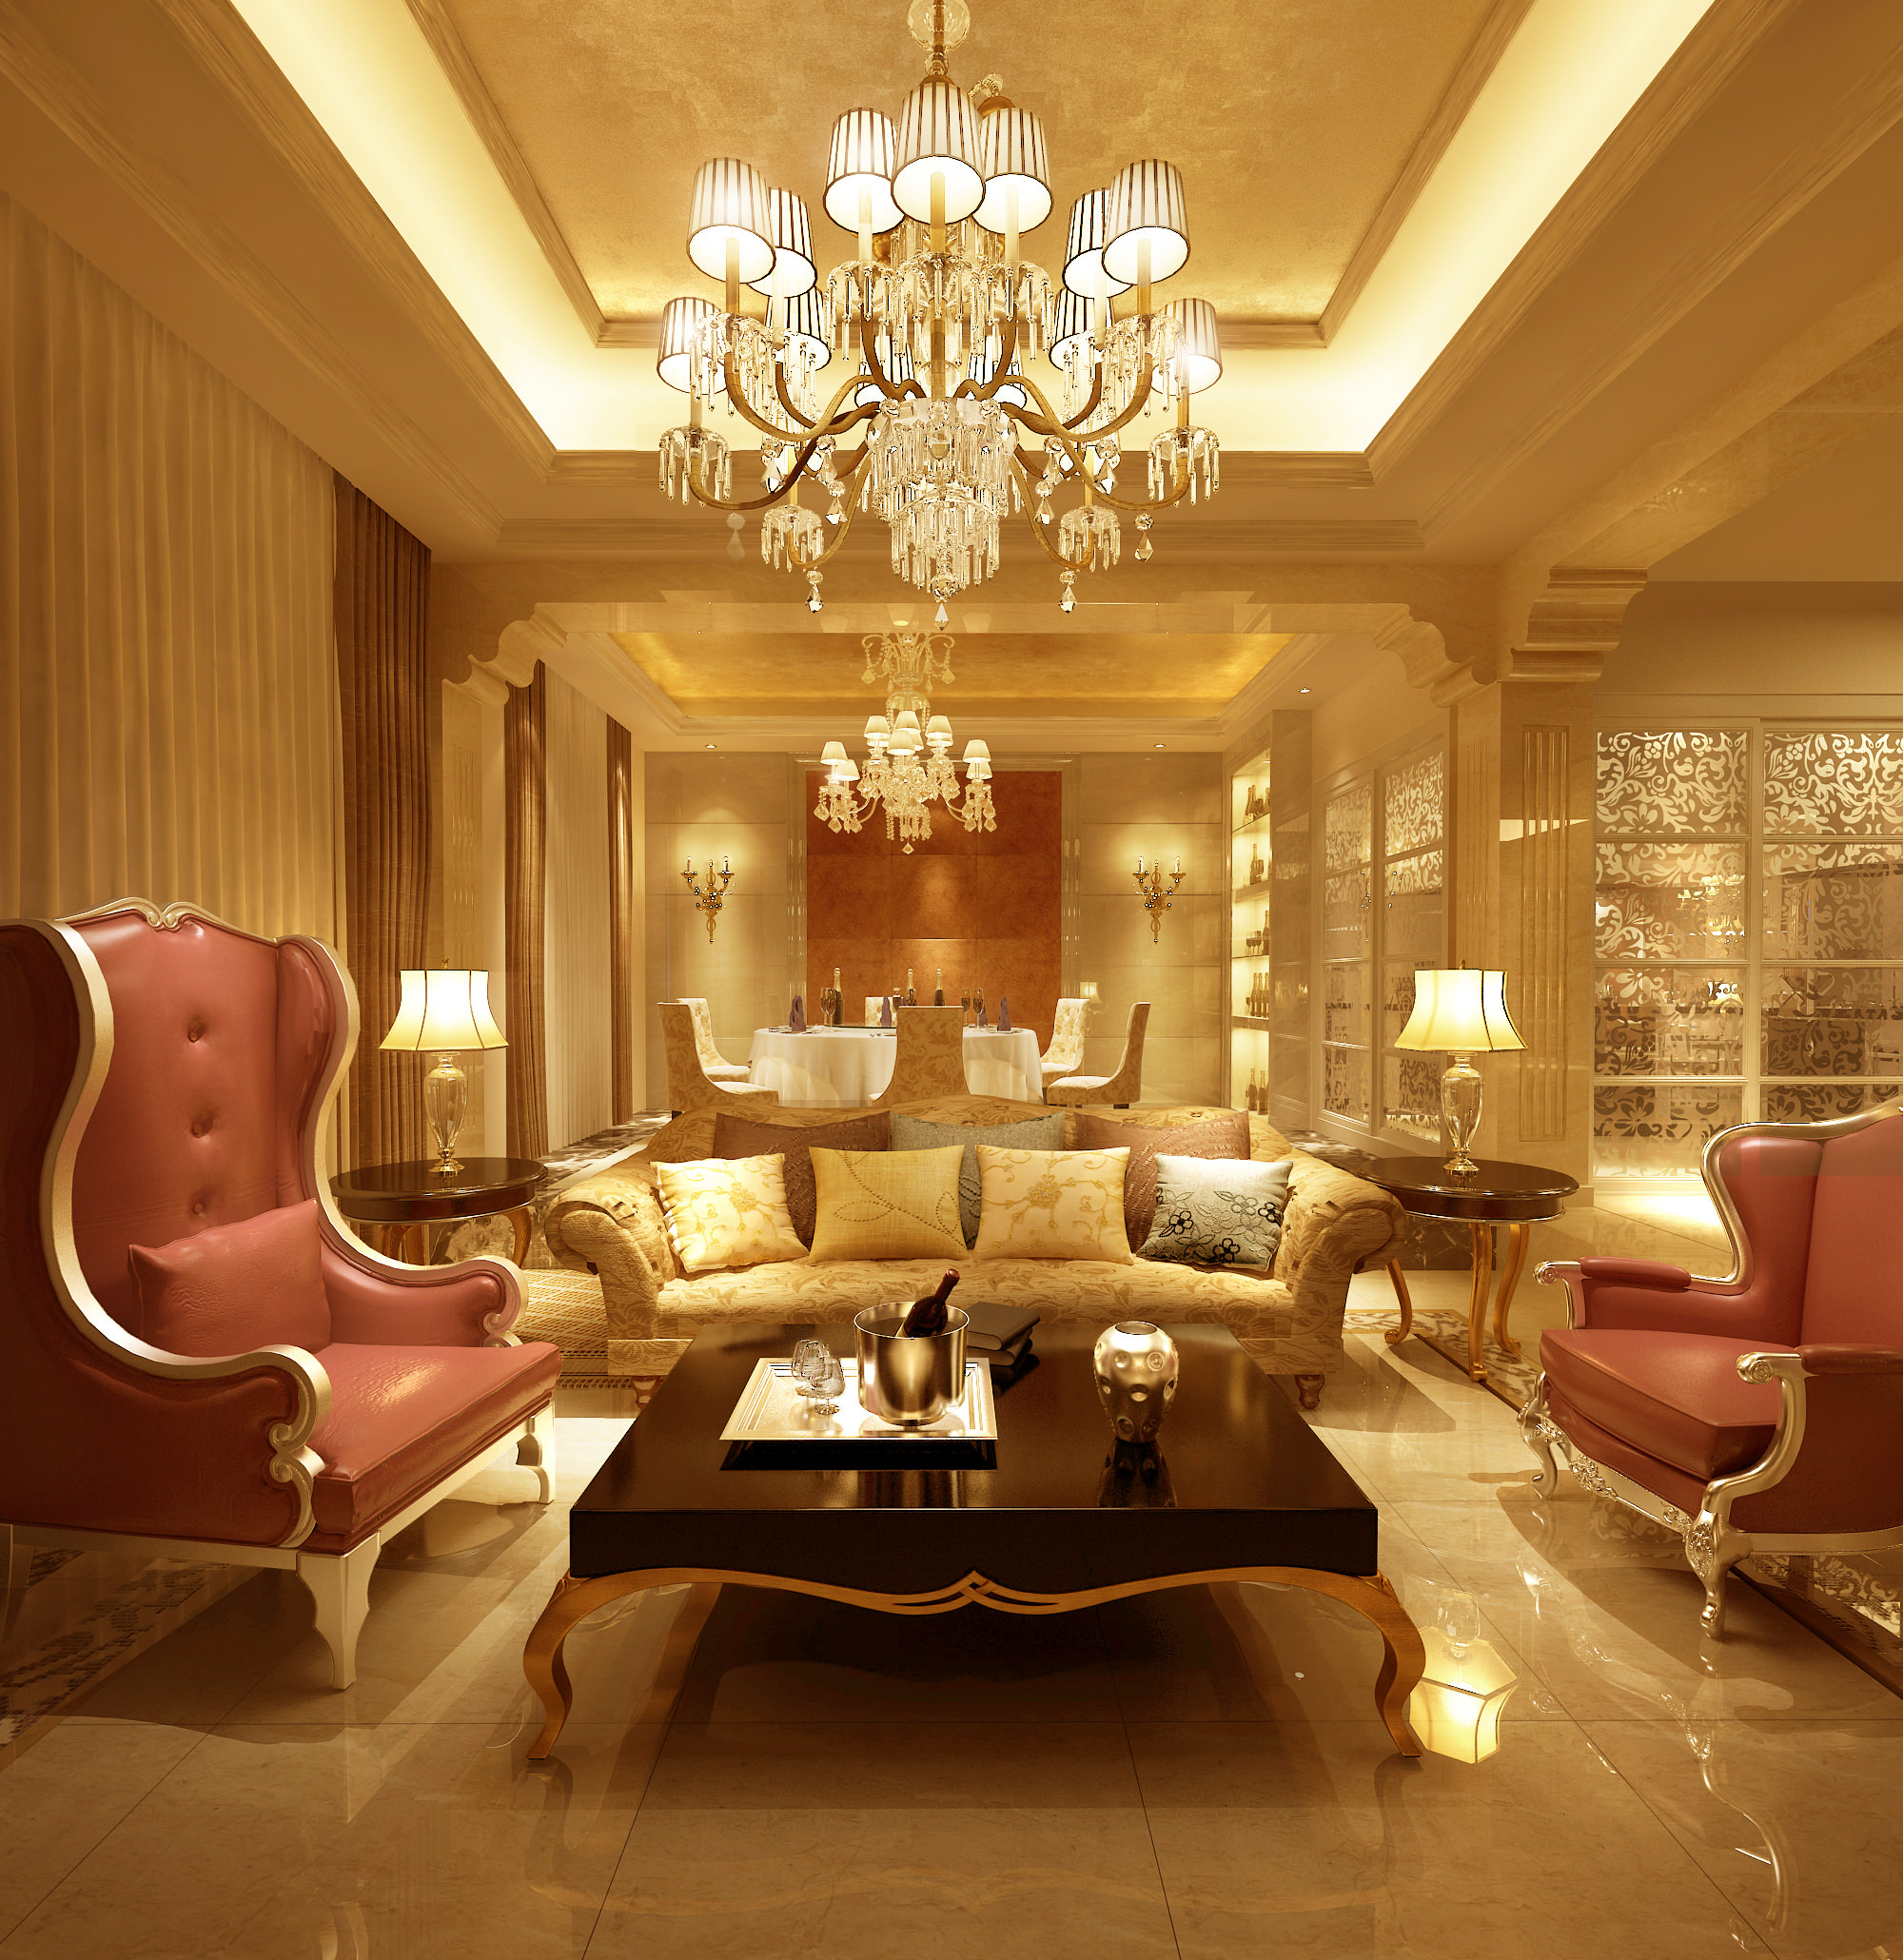 Luxury House Interior Living Room: Collection Living Room And Bedroom Collect... 3D Model